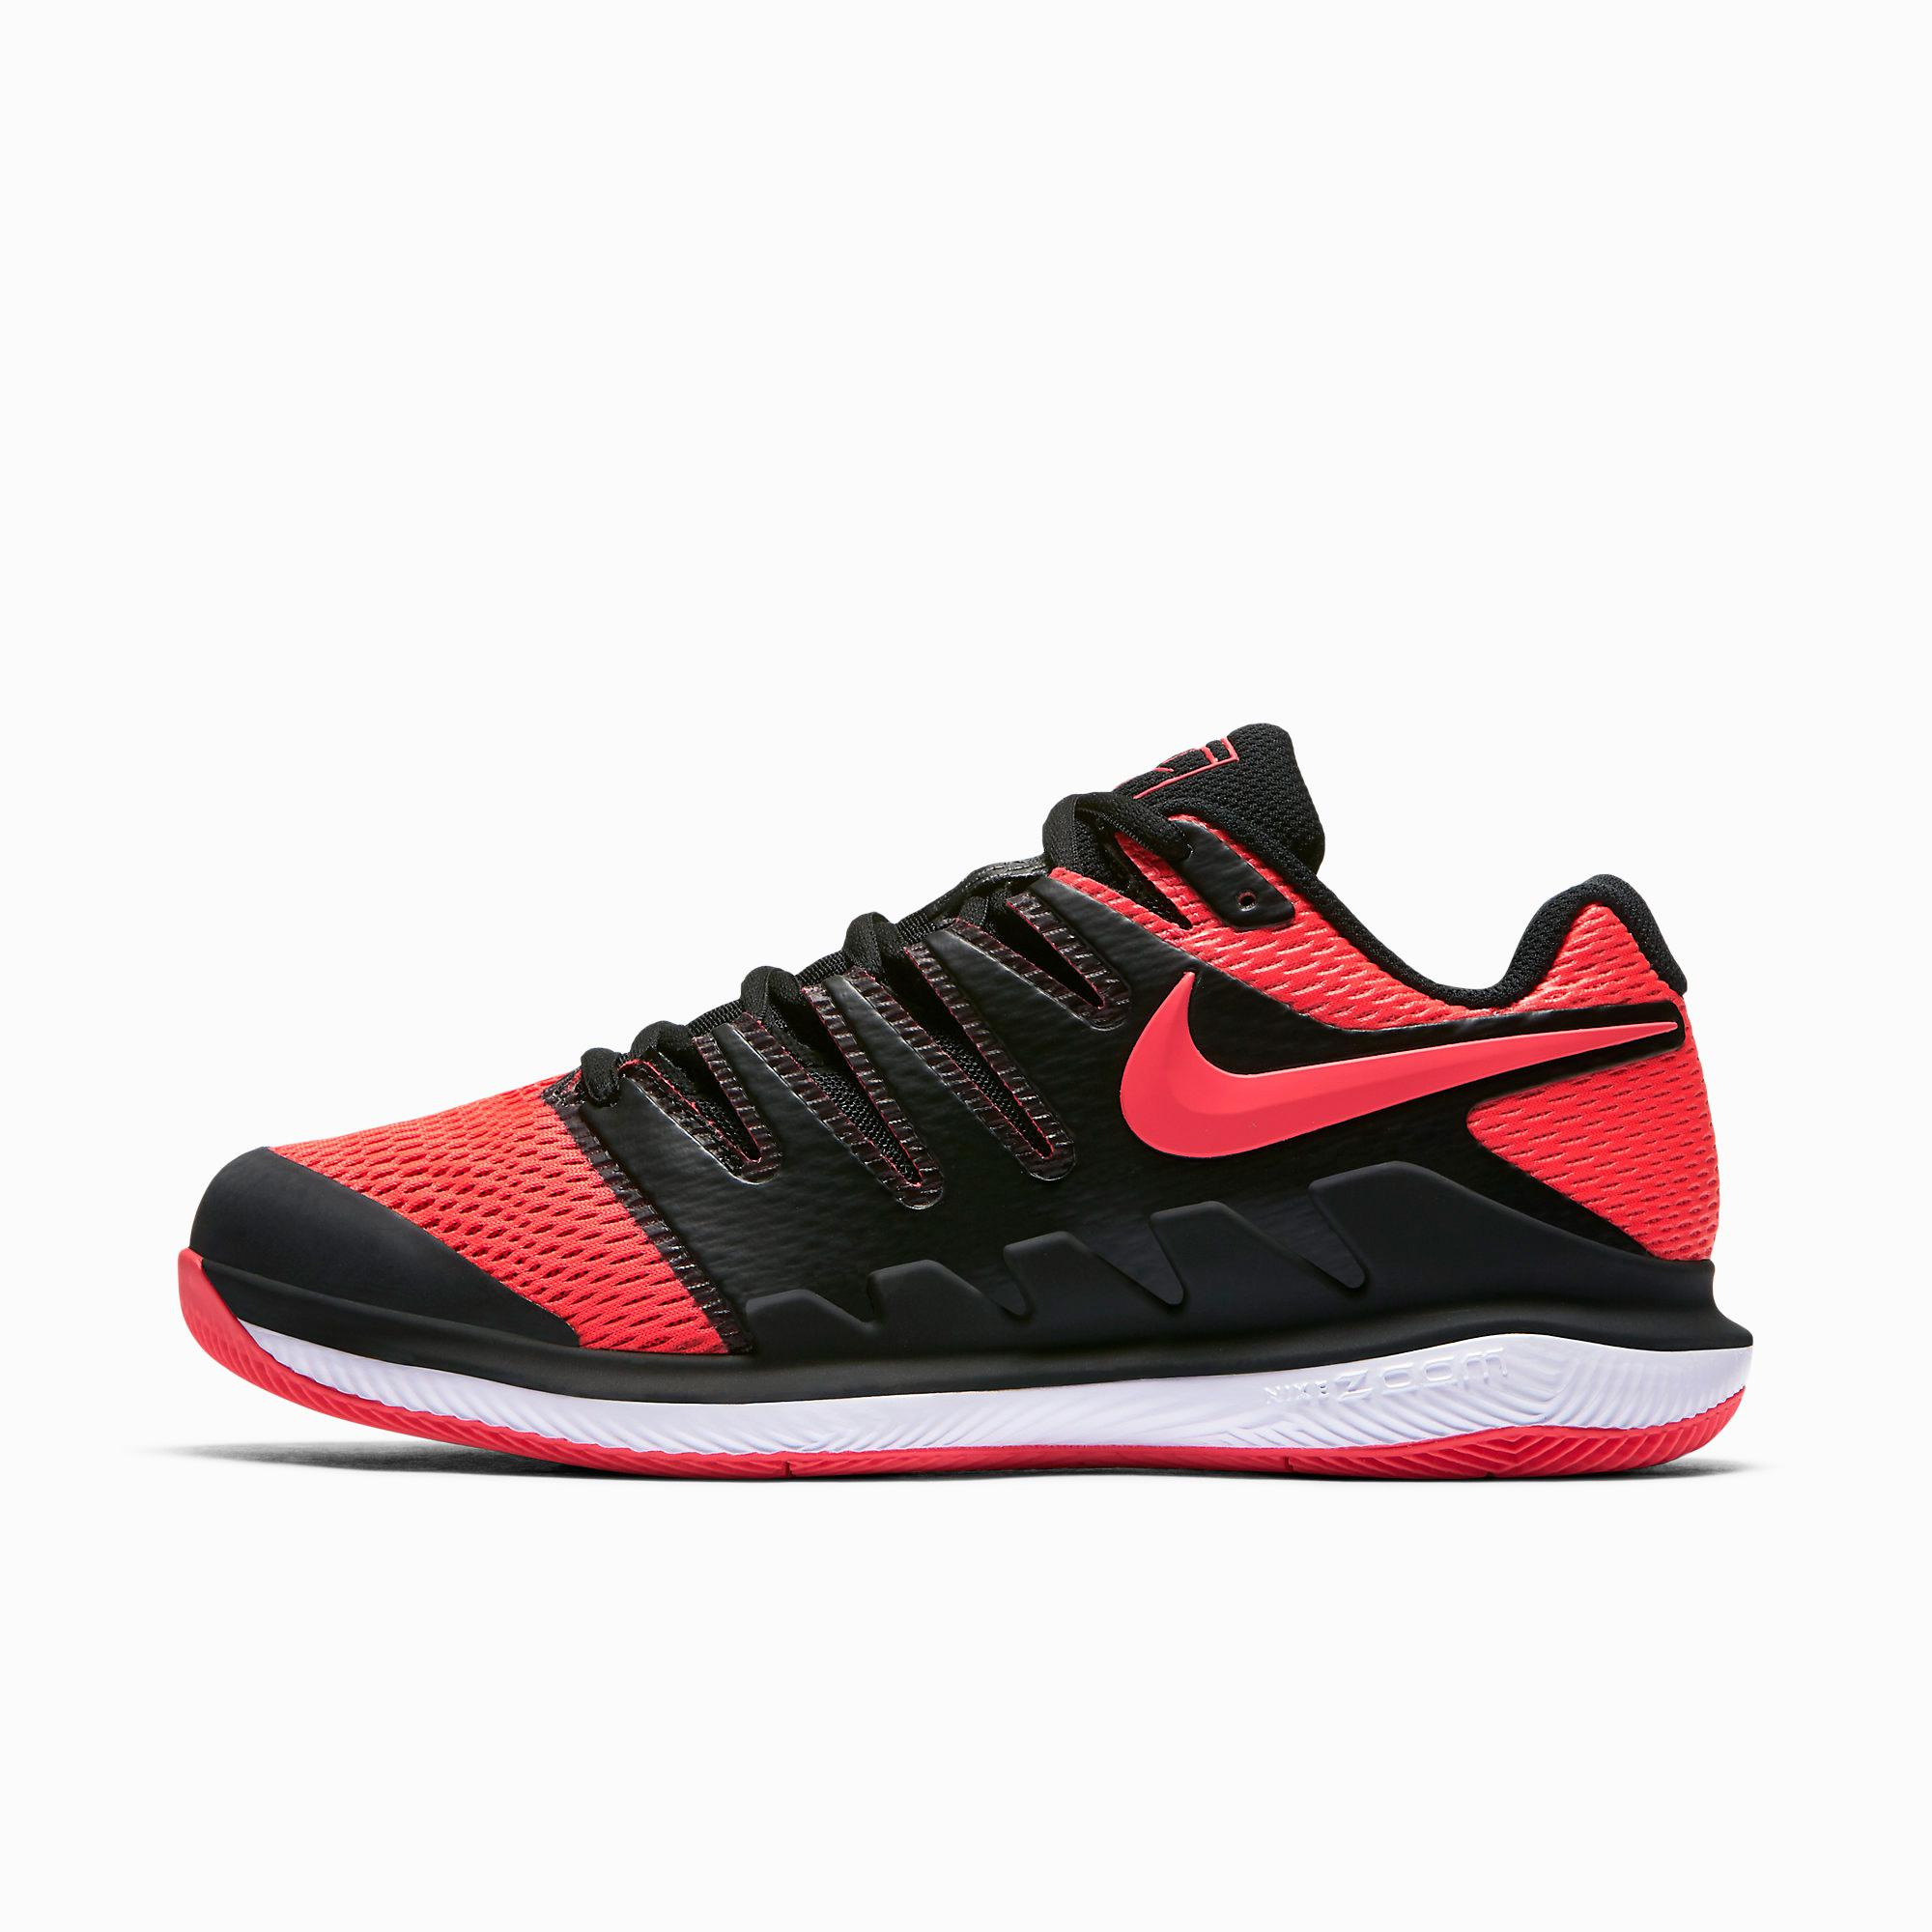 size 40 94f99 b37ab Nike Womens Air Zoom Vapor X Tennis Shoes - Solar RedBlack - Tennisnuts.com